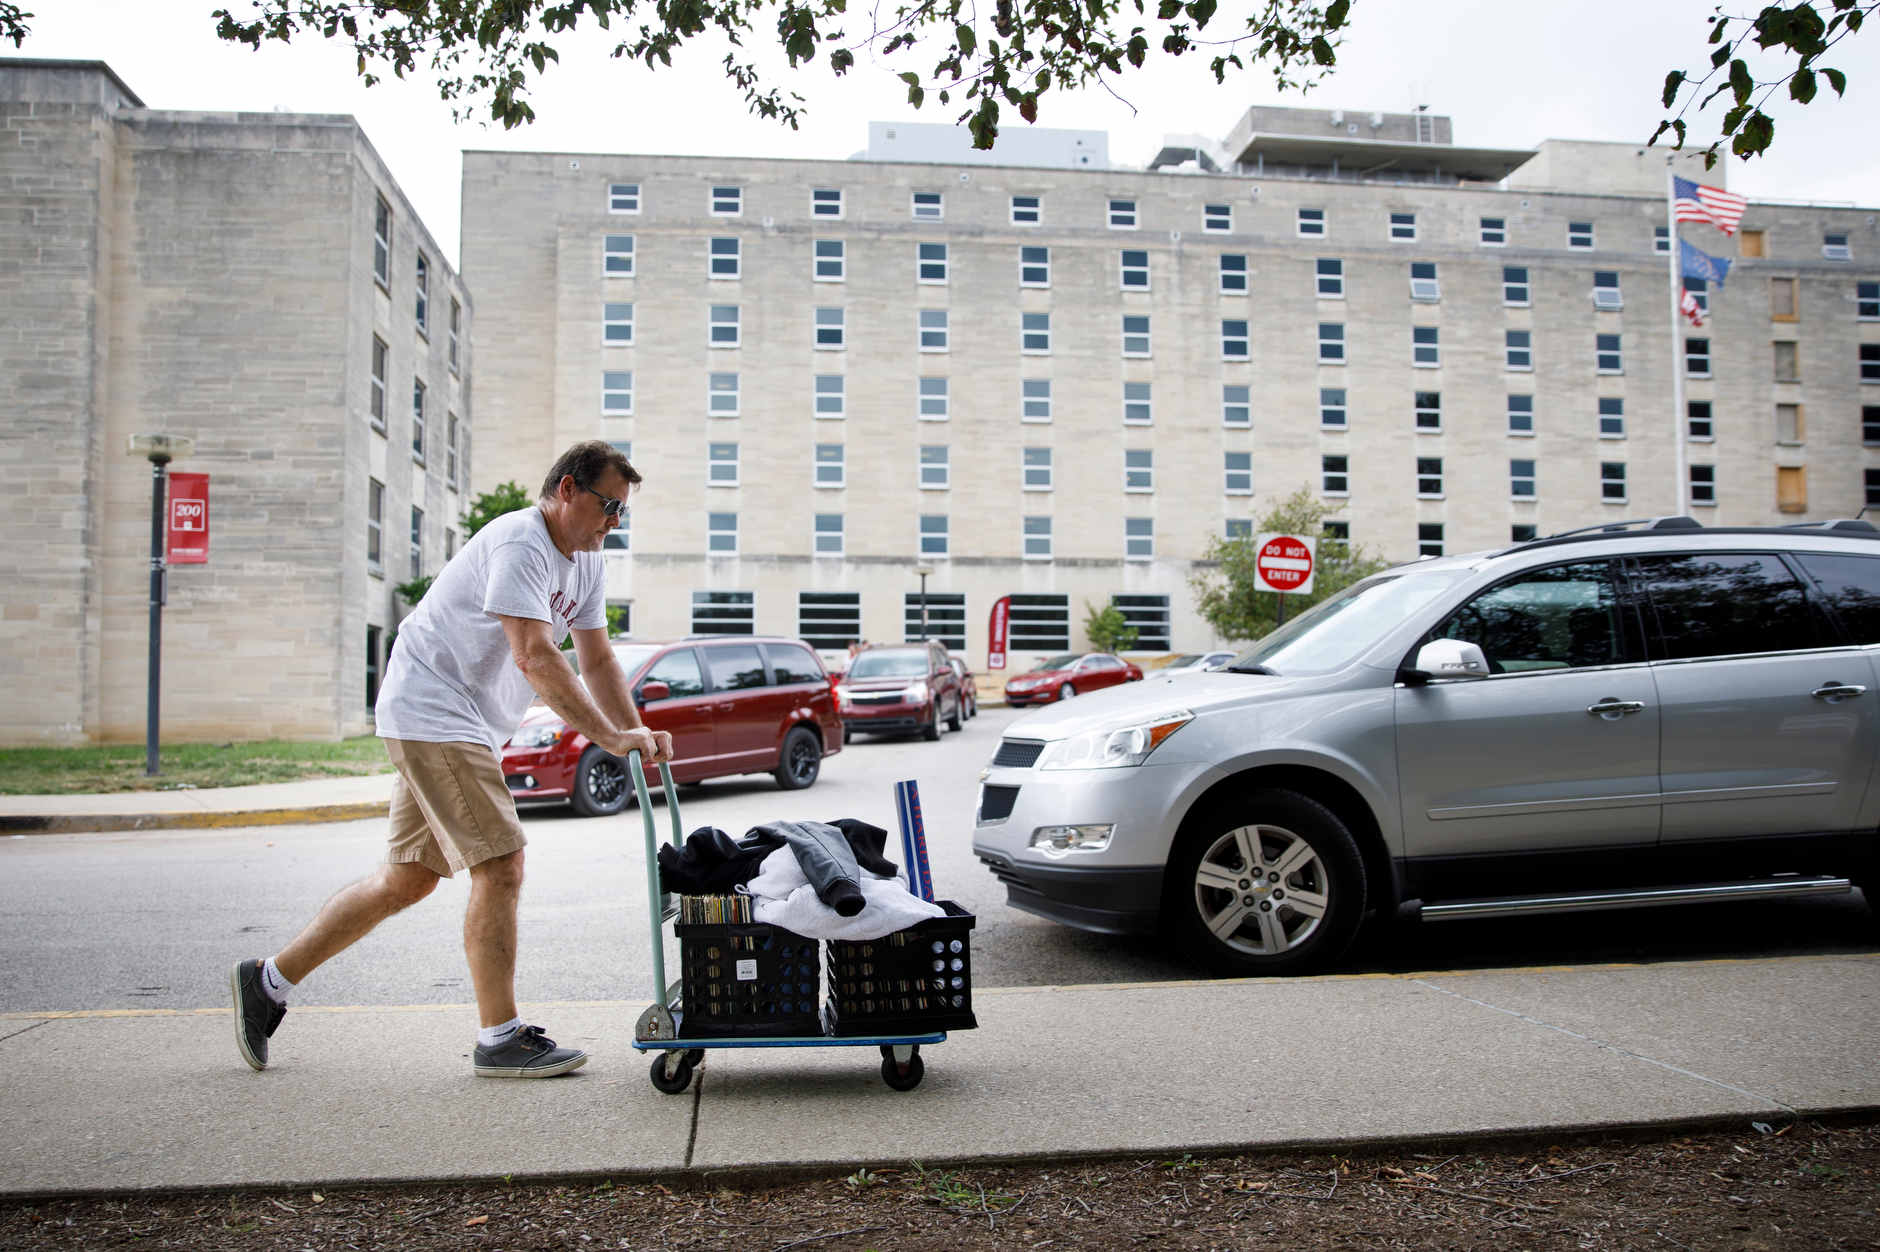 A student's belongings are wheeled past Teter Quad to a room in Ashton Center during IU Bloomington move-in on Tuesday, Aug. 20, 2019. (James Brosher/Indiana University)